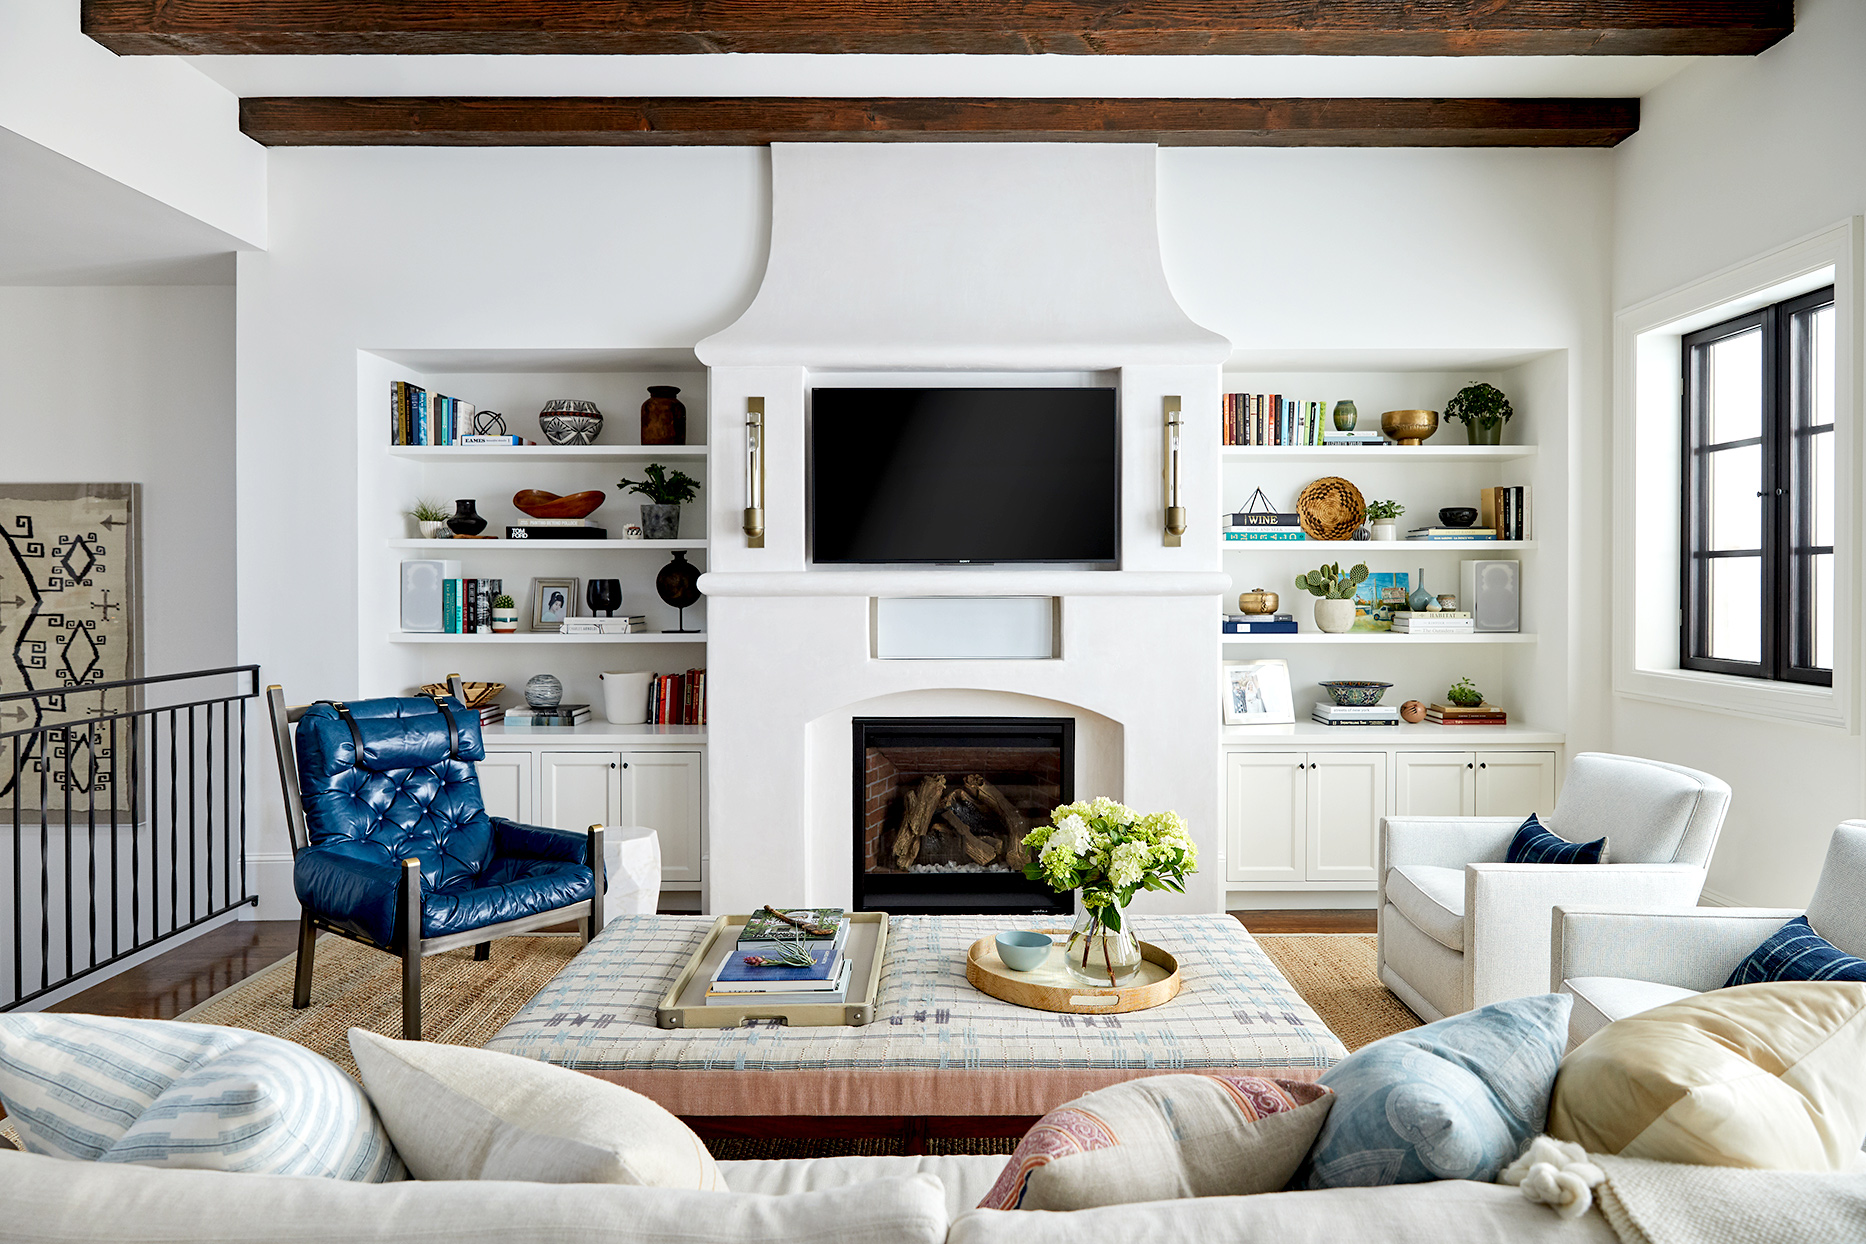 Living room with fireplace, couch and chair seating